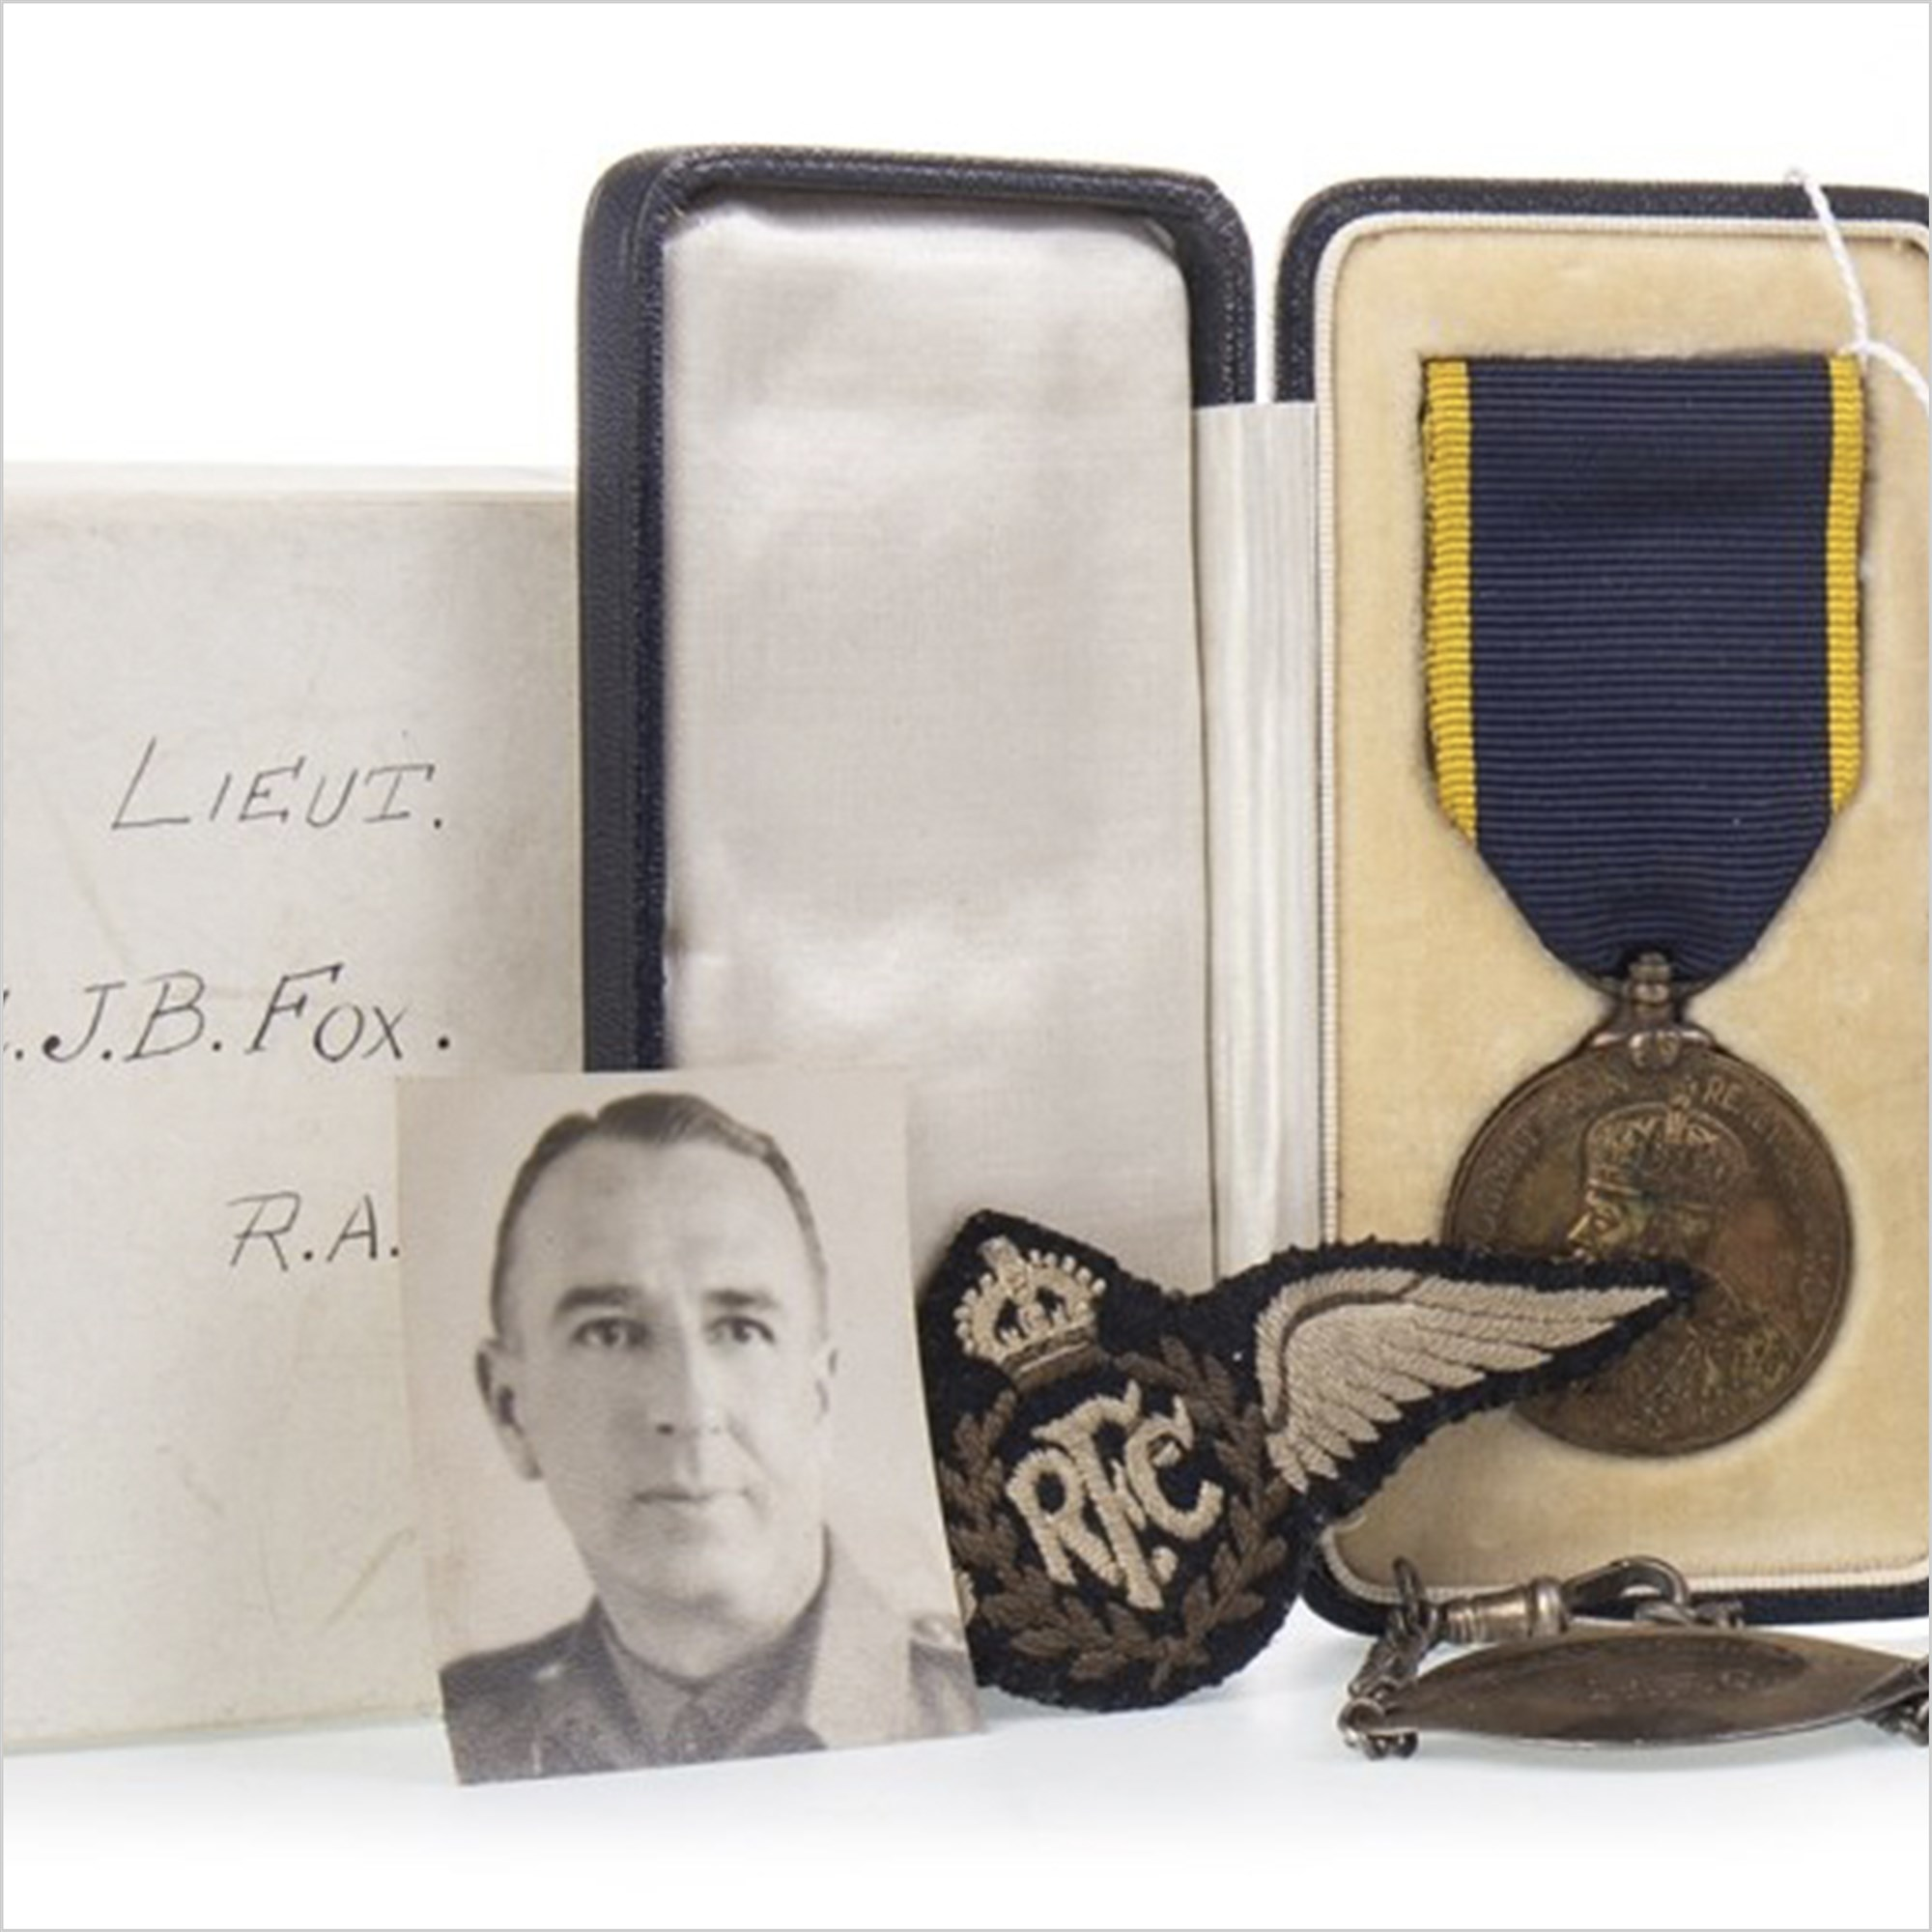 The Works of Art, Medals, Militaria & Furniture Auction